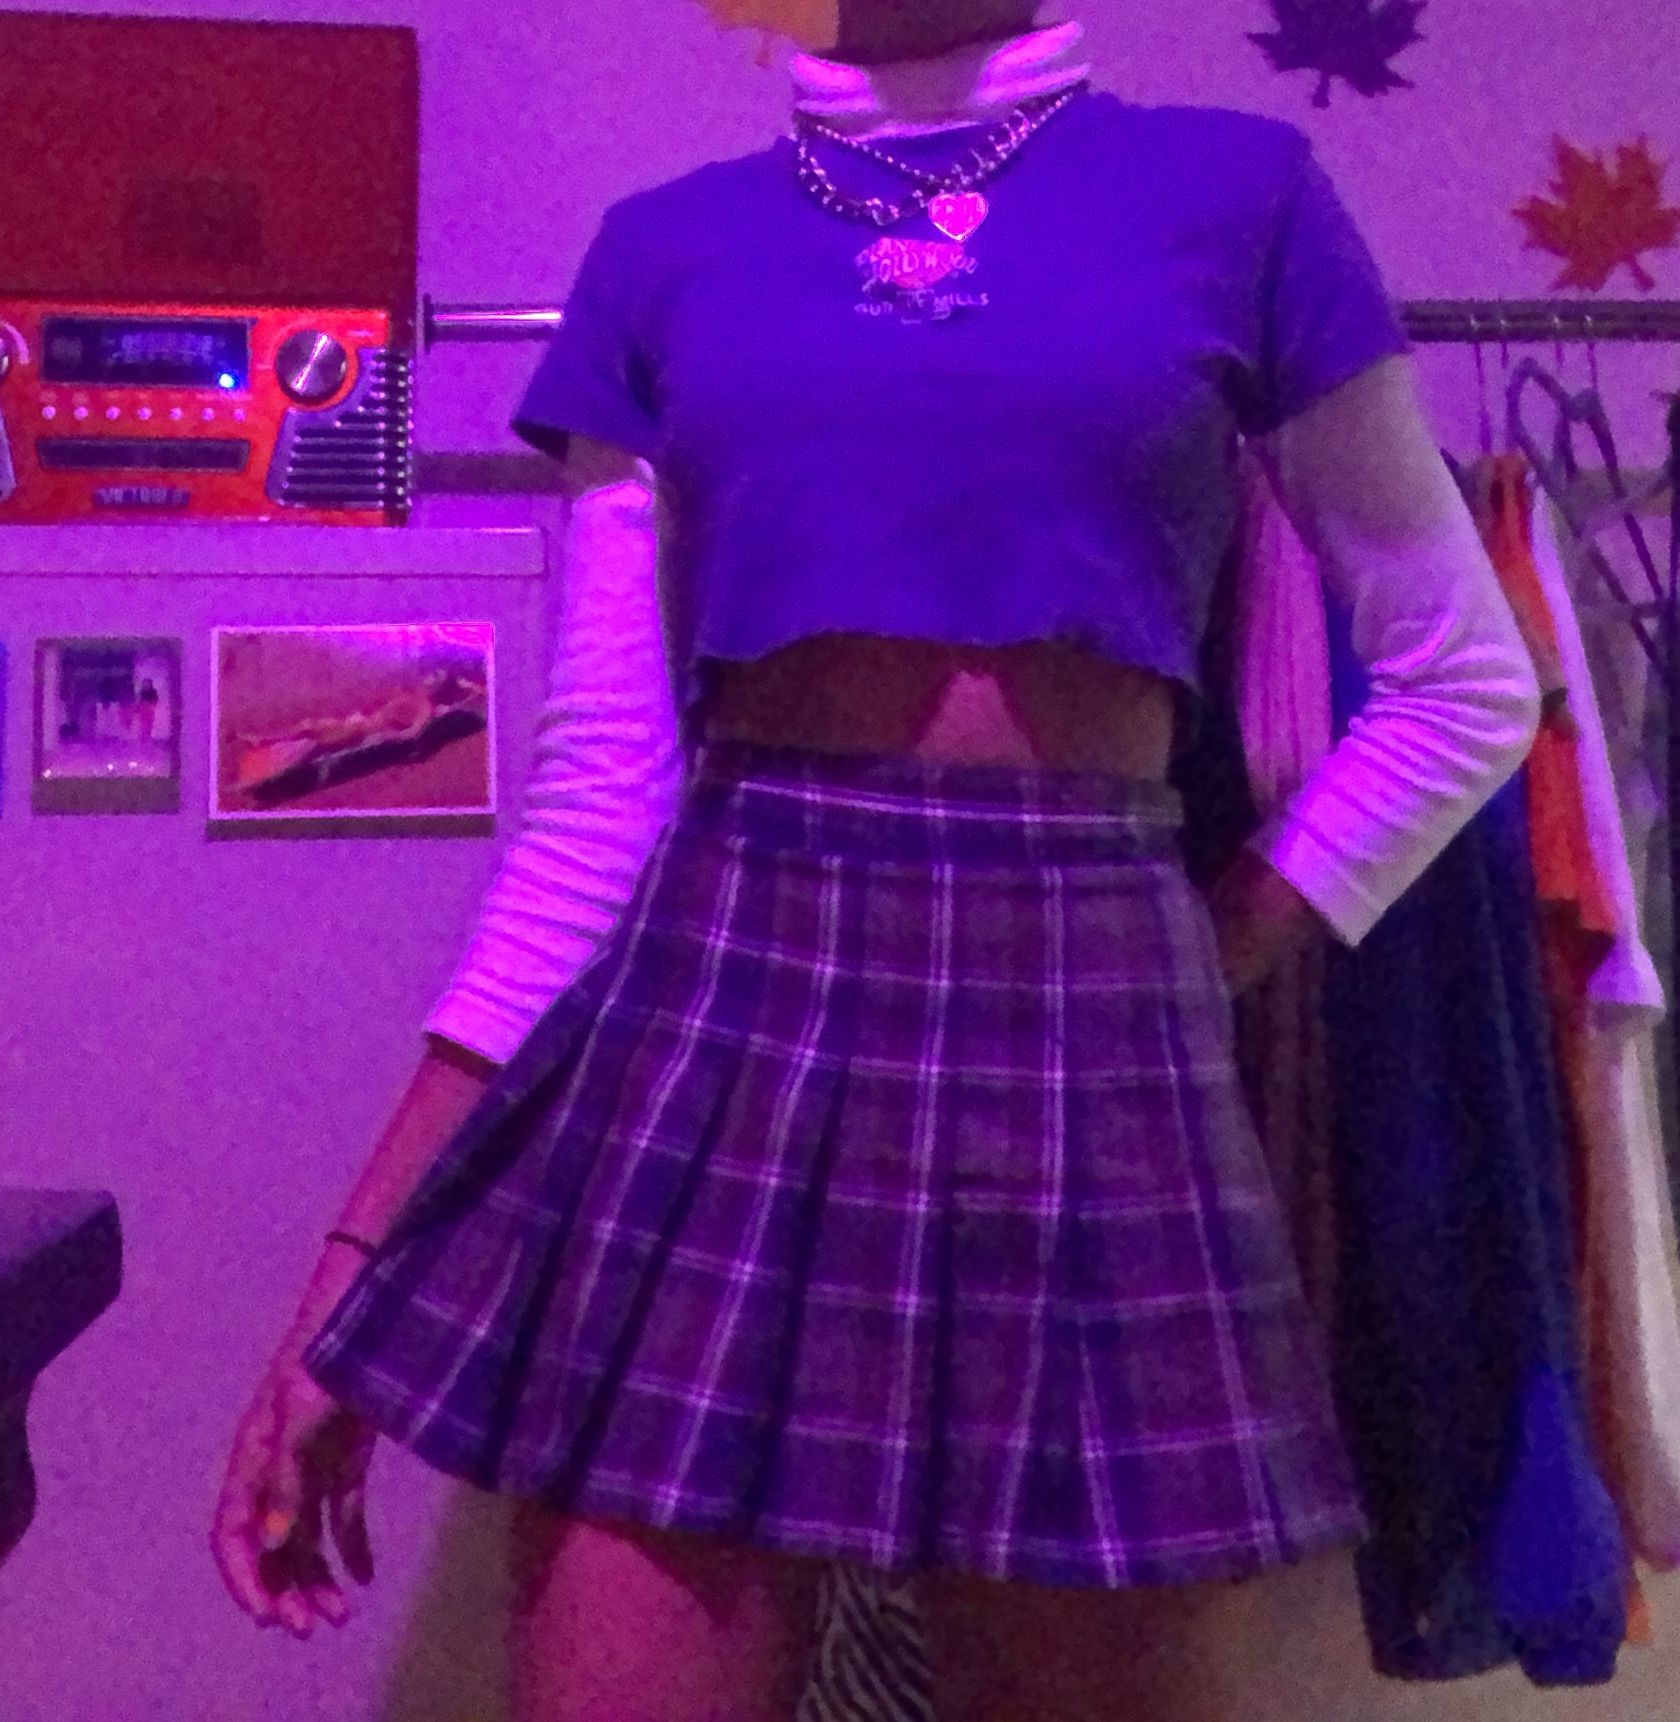 Soft Vintage Aesthetic Outfits